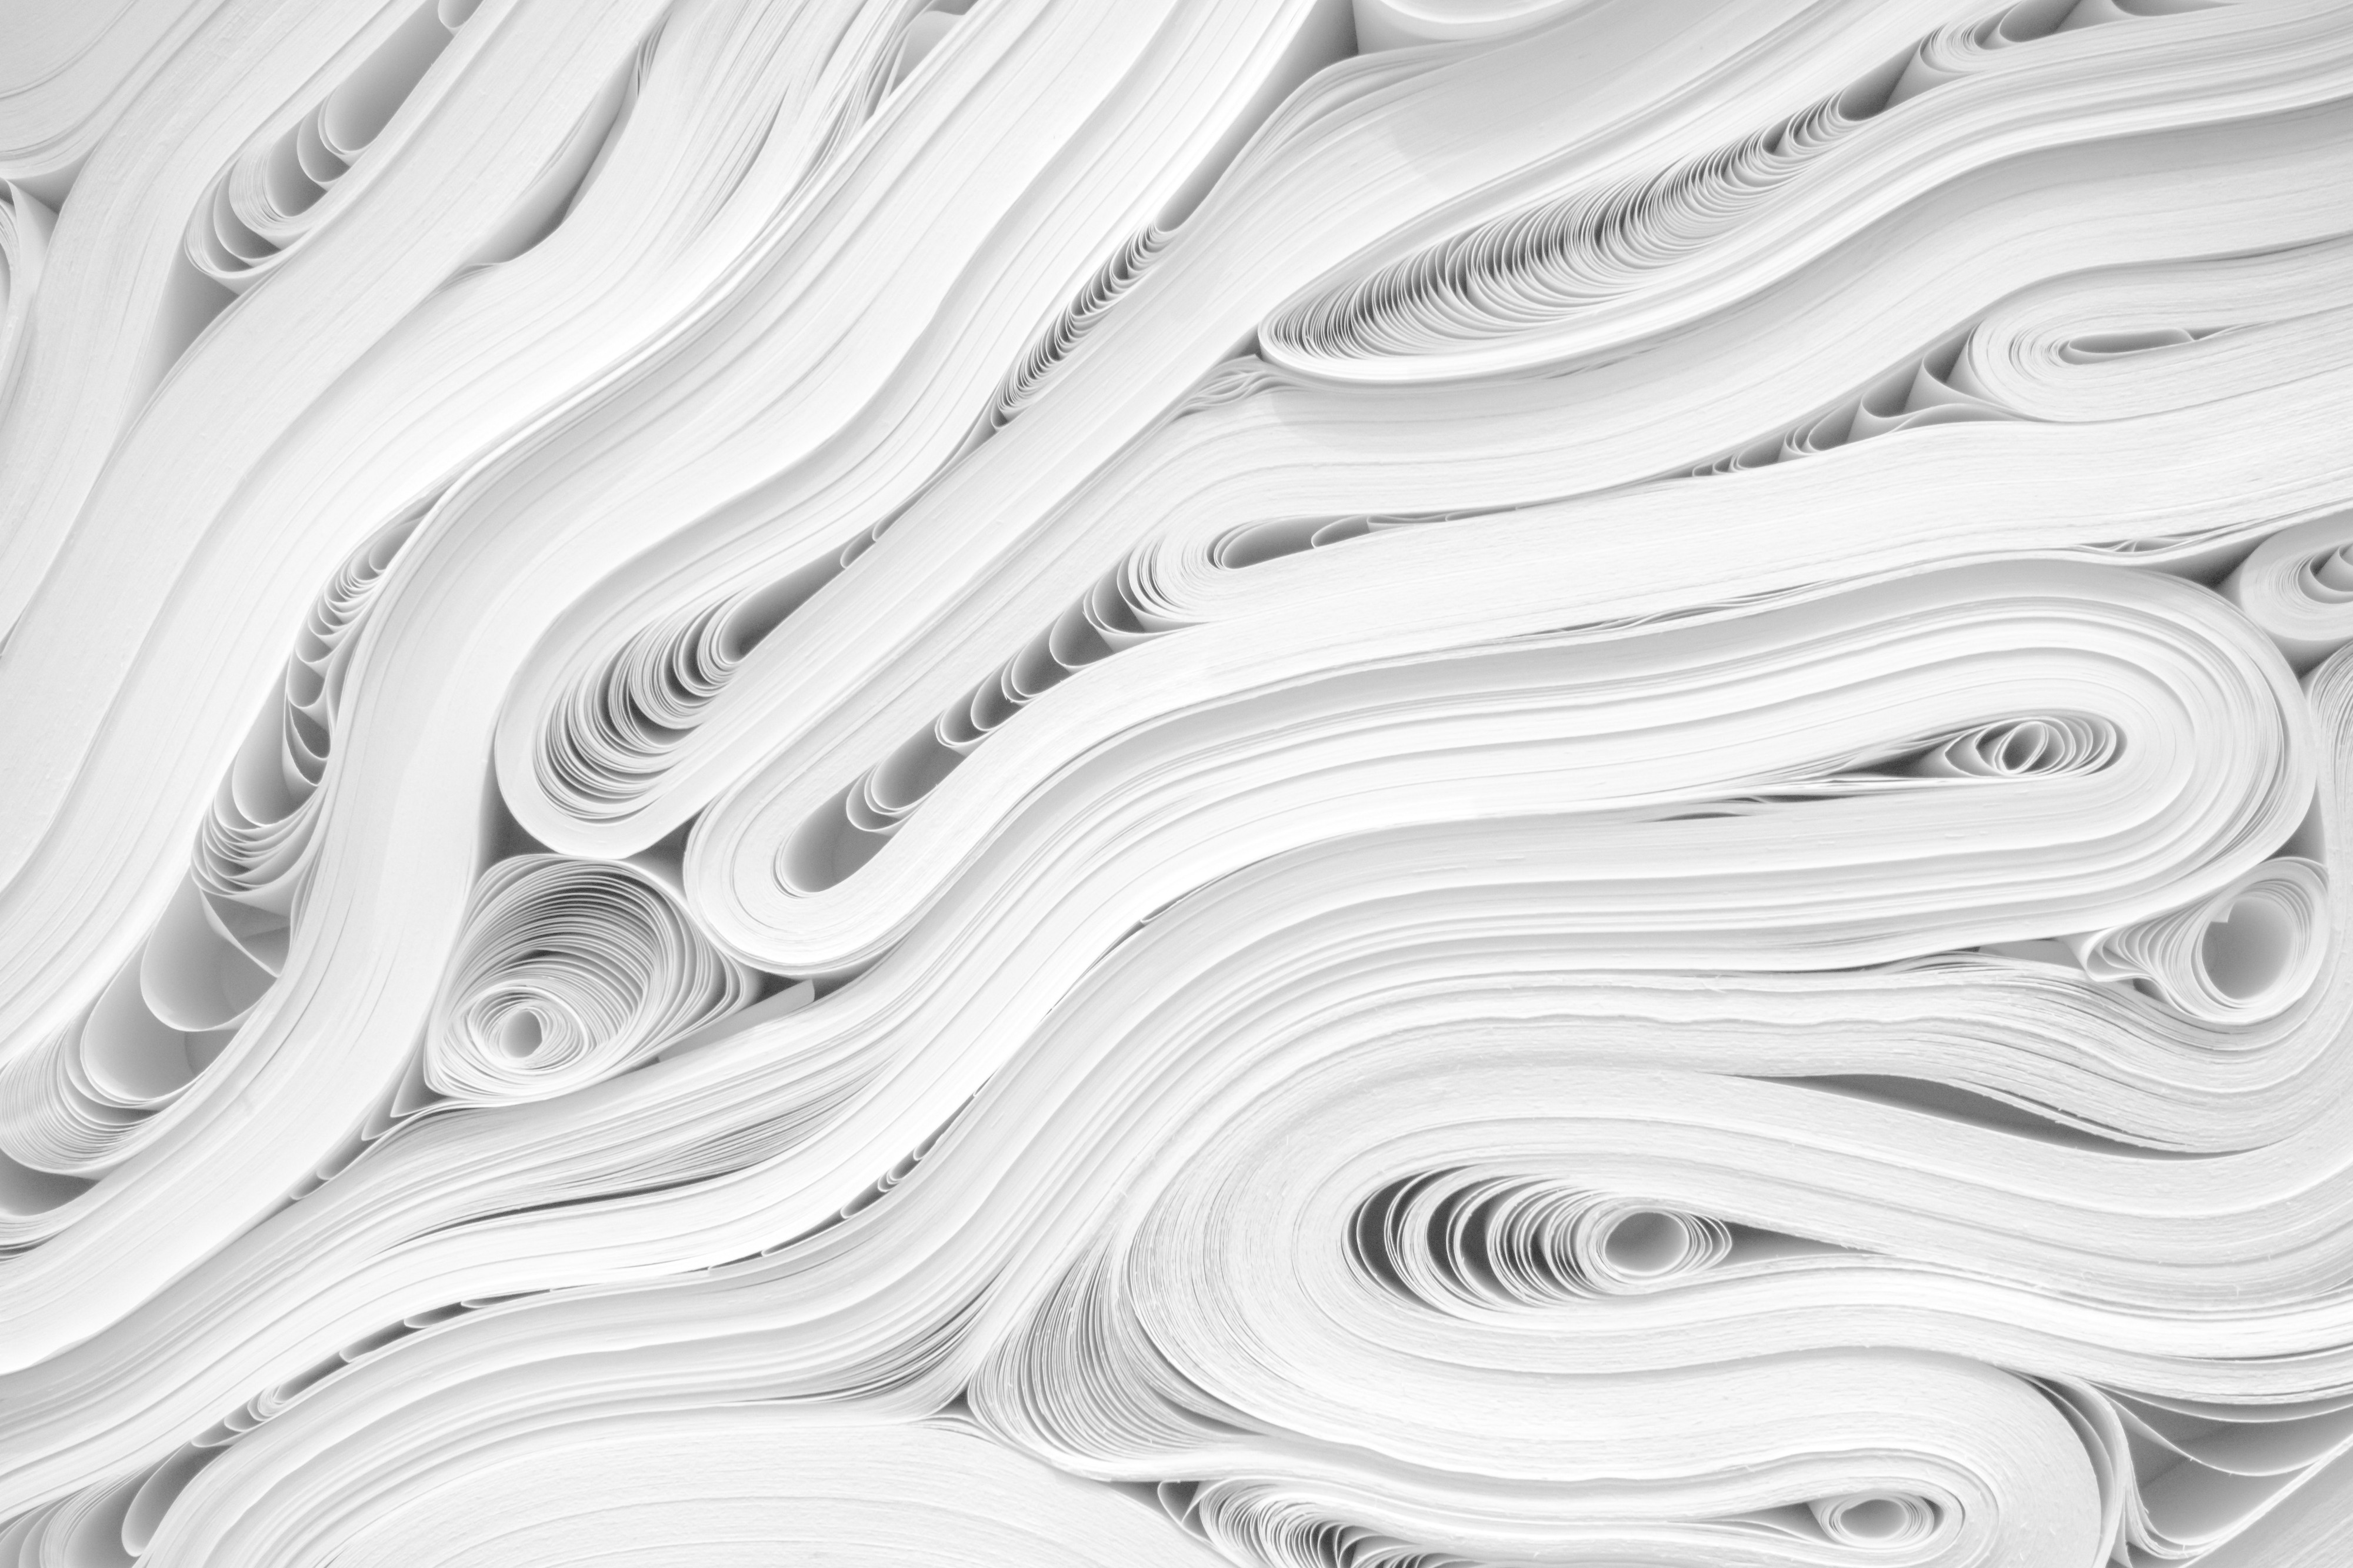 paperless stak of paper